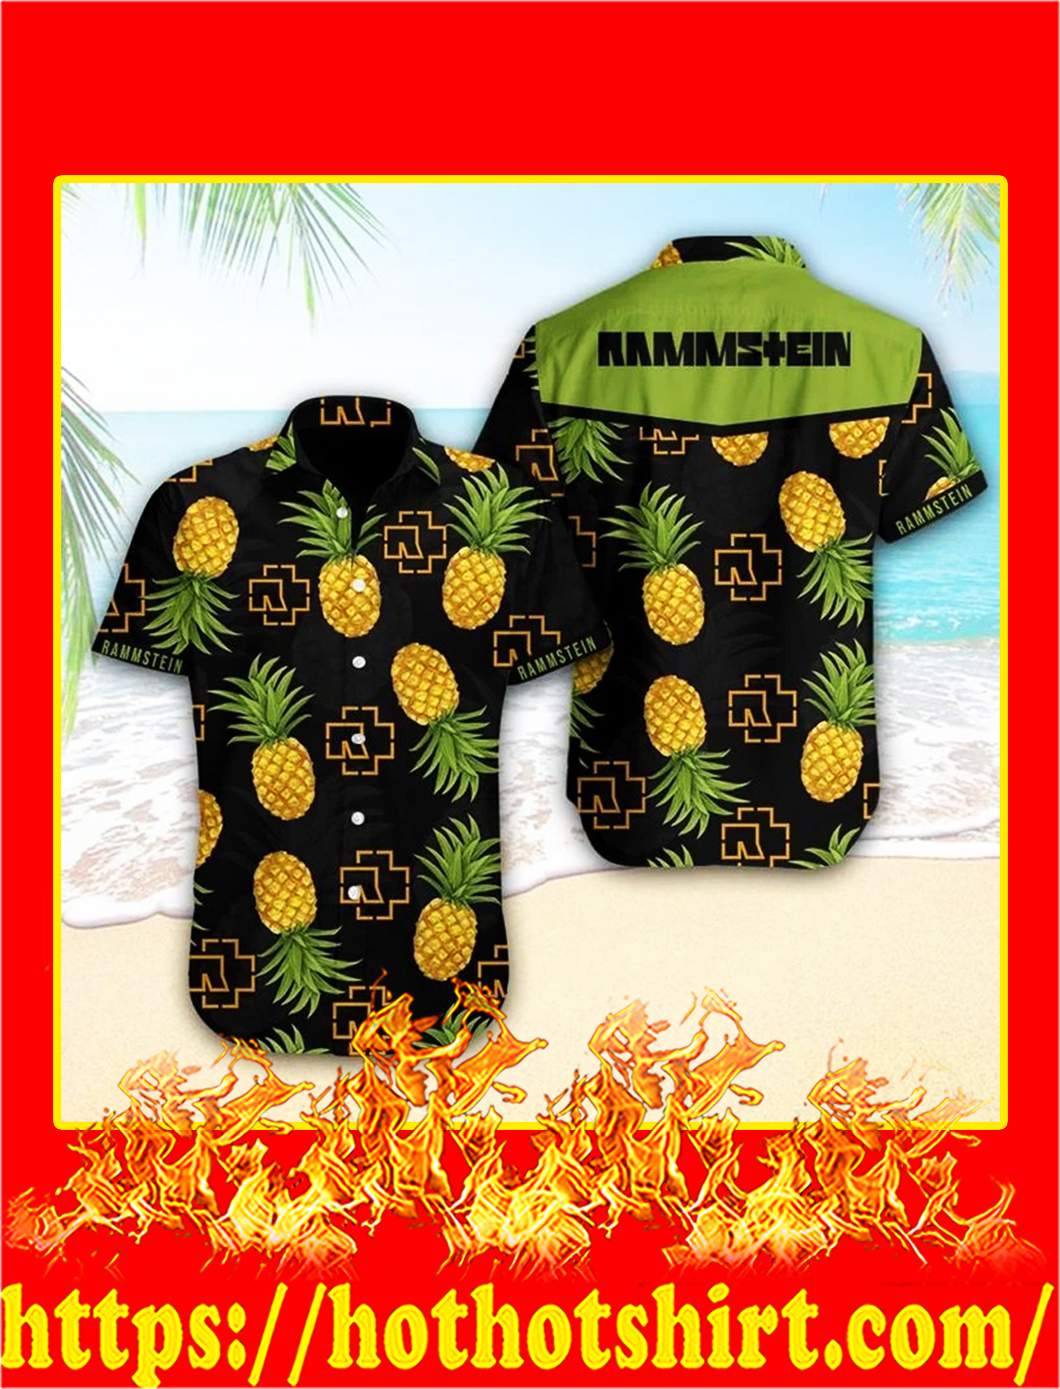 Rammstein pineapple hawaiian shirt - M